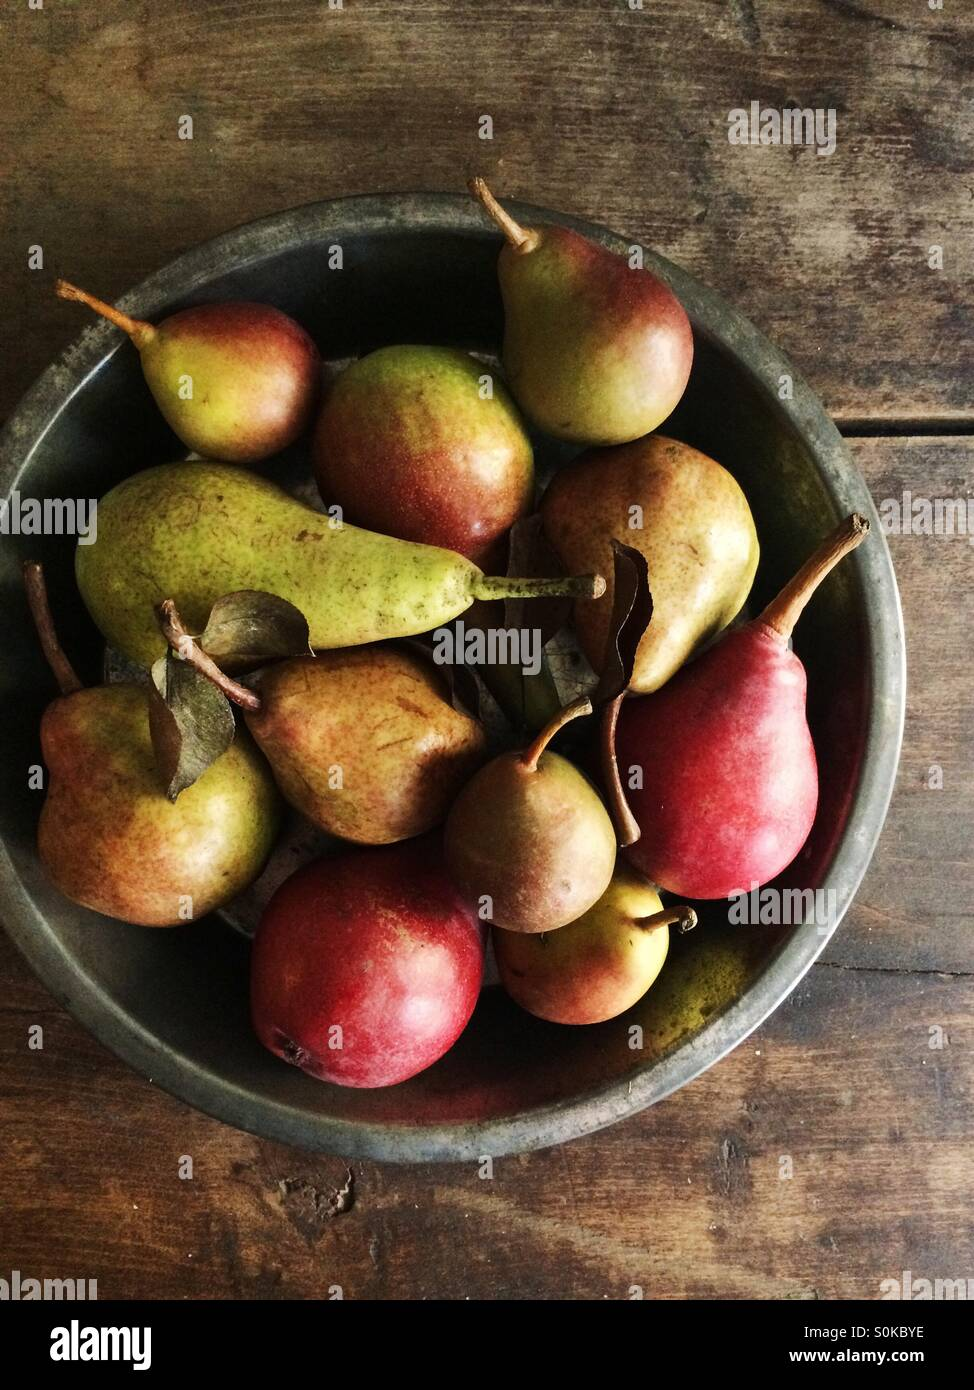 A variety of fall pears. - Stock Image